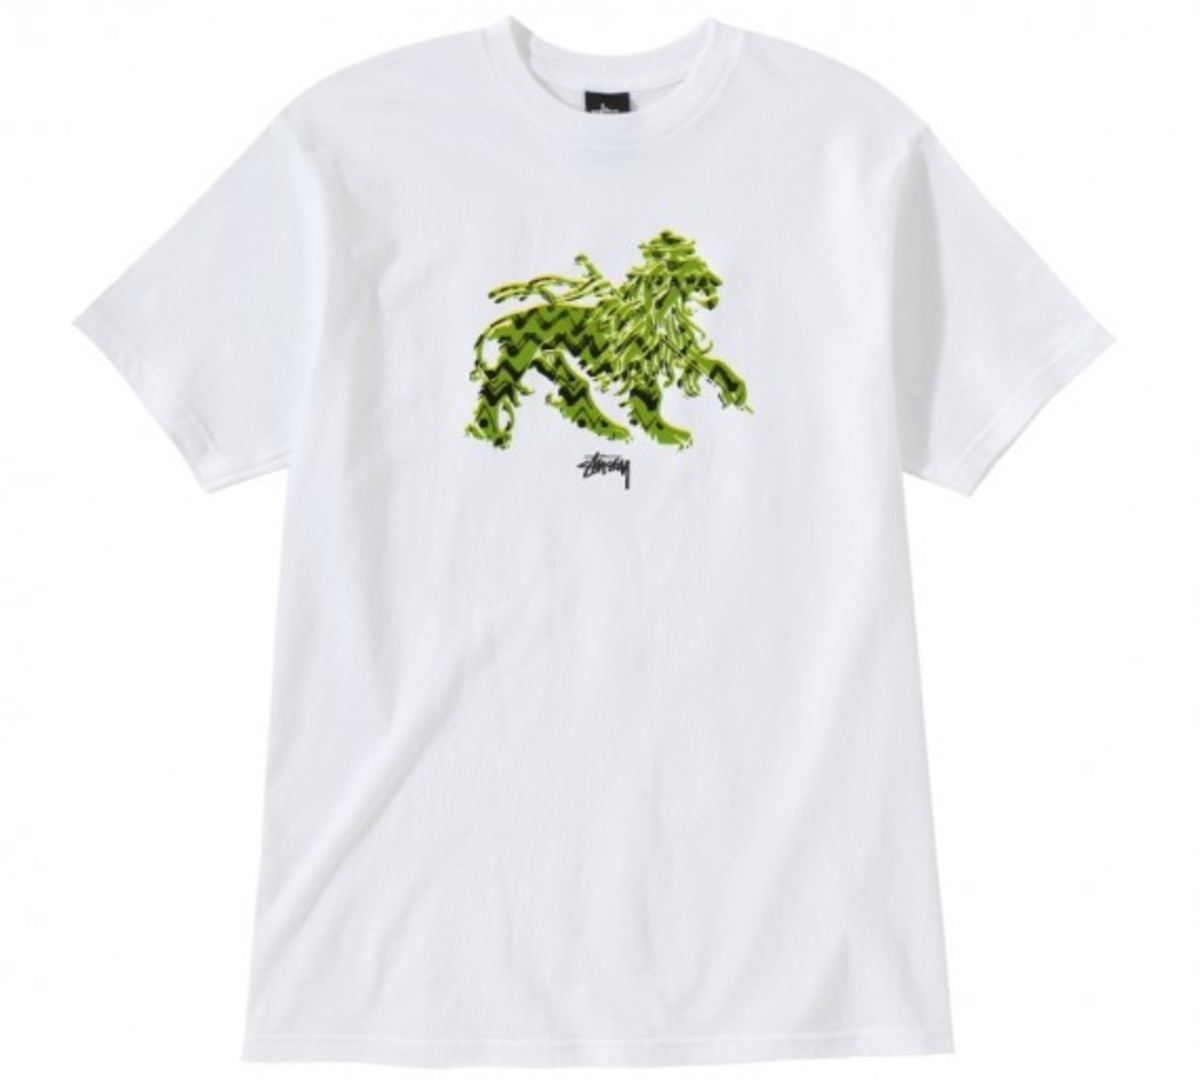 stussy-summer-2012-t-shirt-collection-14